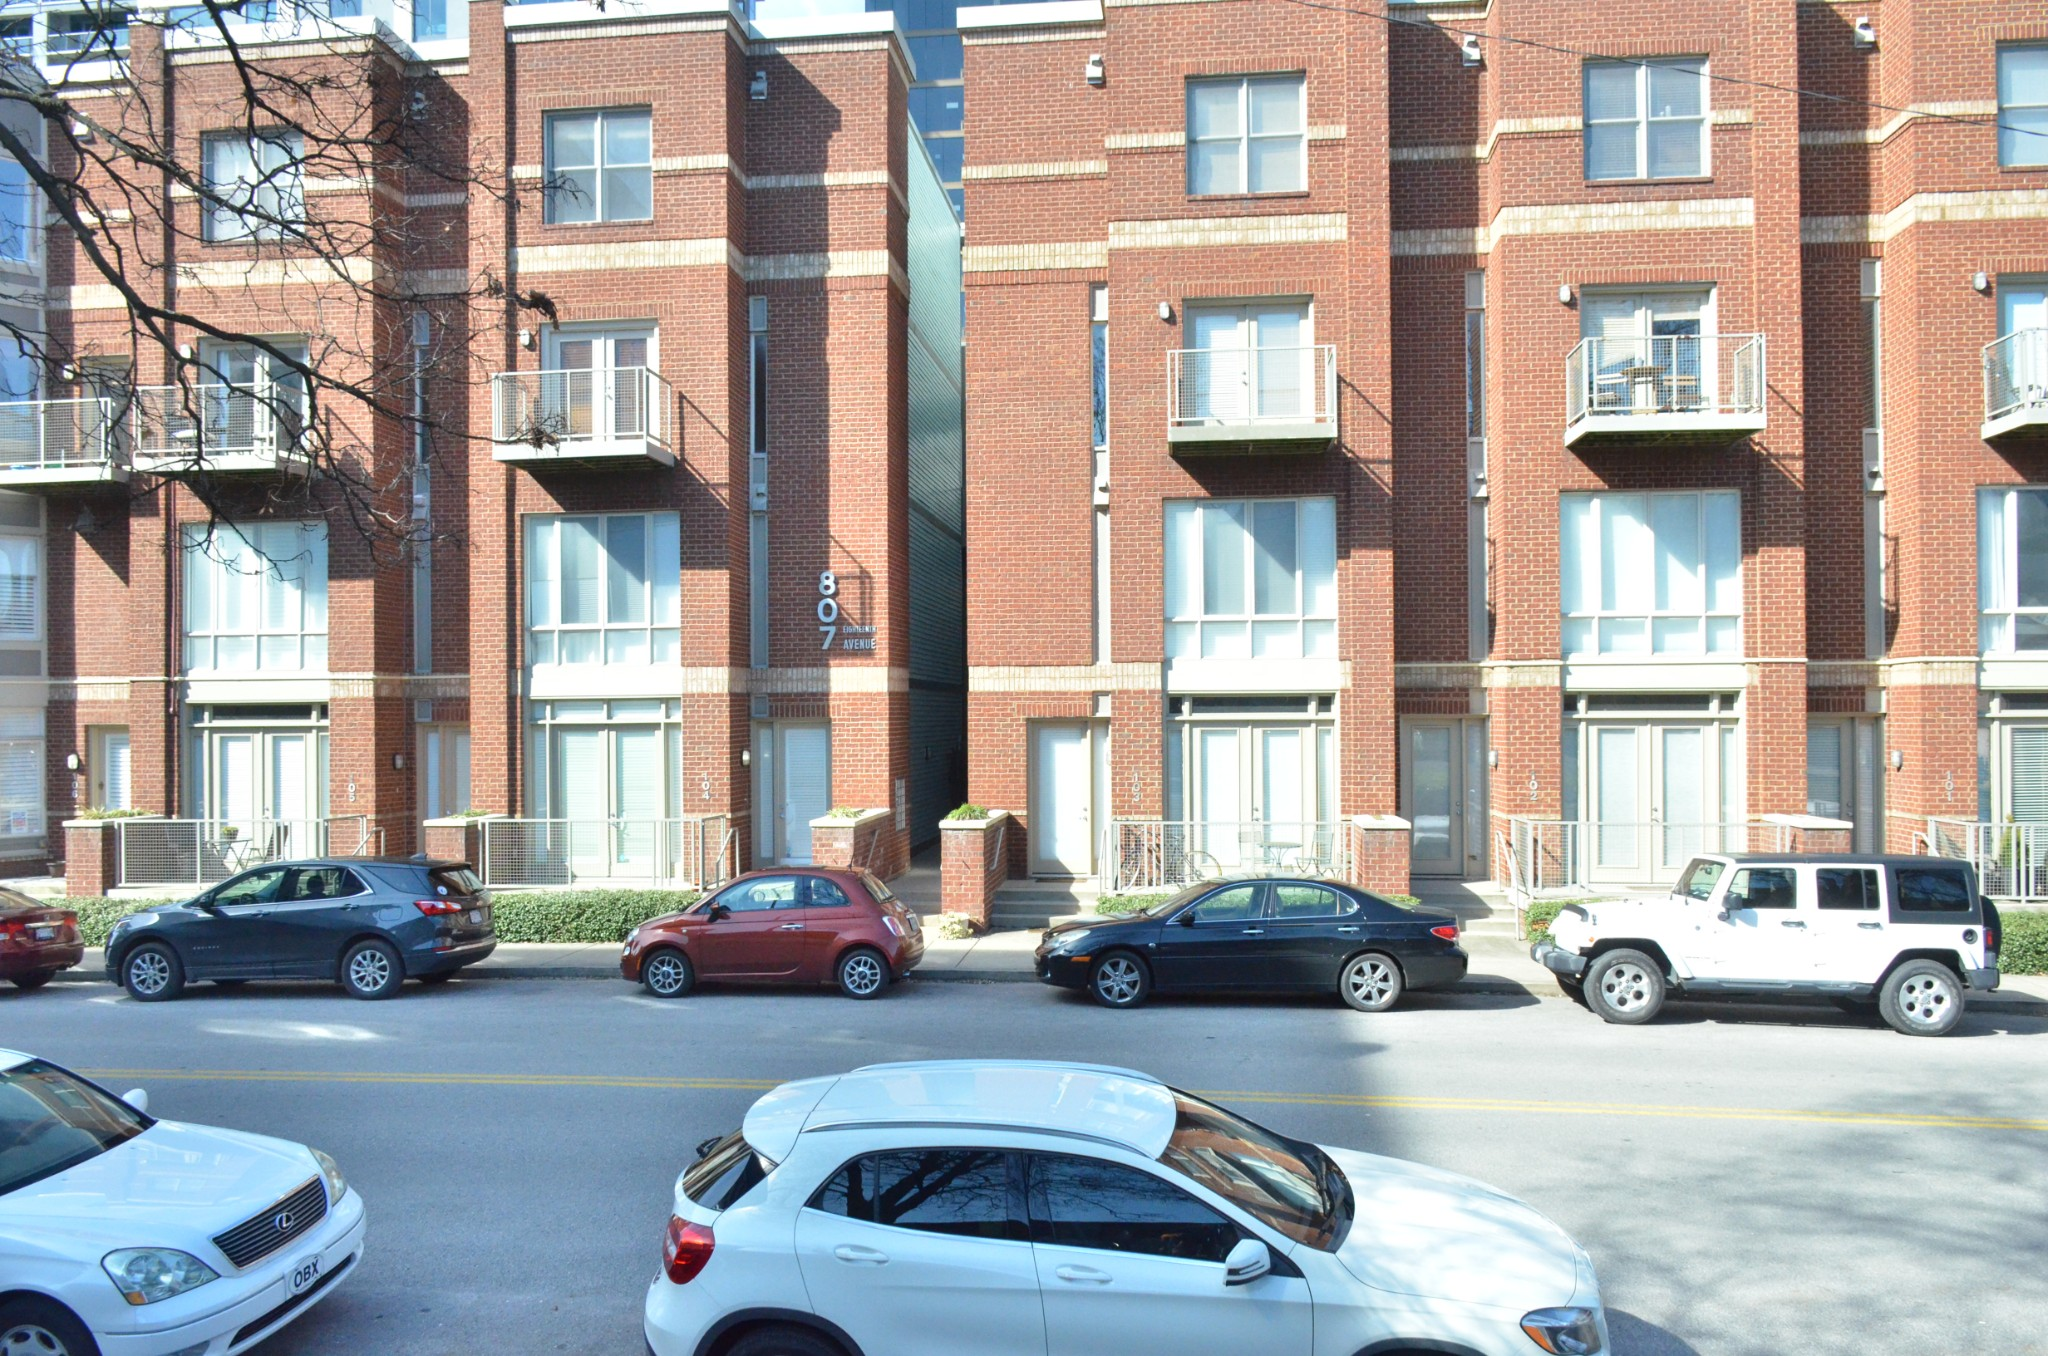 One of Nashville - Midtown 1 Bedroom Homes for Sale at 807 18th Ave, S